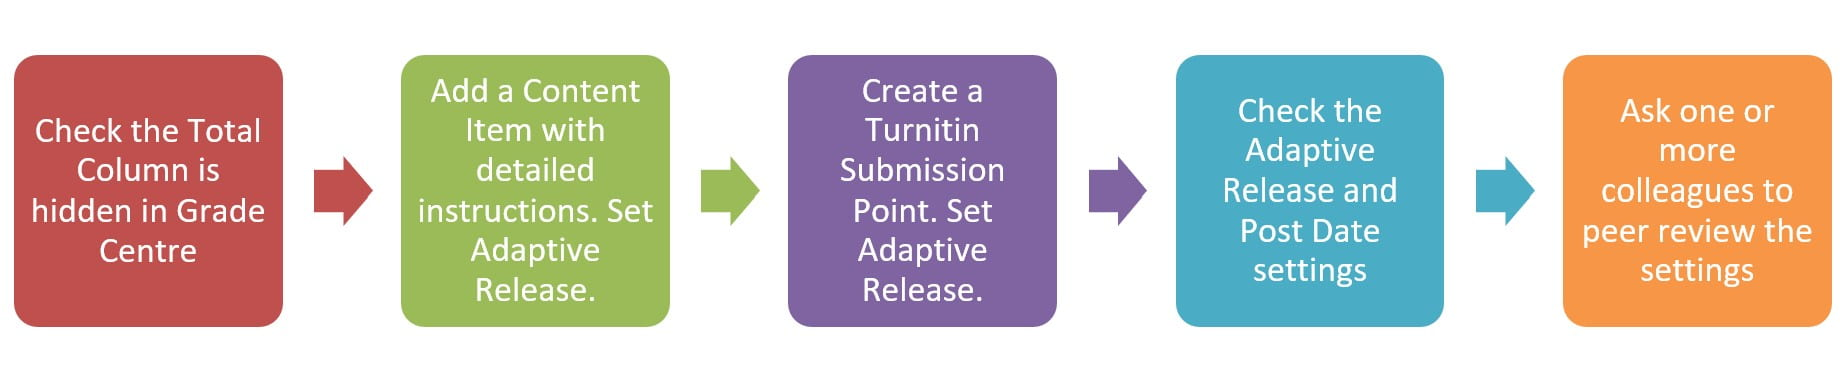 """Flow diagram of 5 stages: """"Check the total column is hidden in grade centre"""", """"Adda a content item with detailed instructions. Set adaptive release"""", """"Create a Turnitin submission point. Set adaptive release"""", """"Check the adaptive release and post date settings"""", """"Ask one or more colleagues to peer review the settings""""."""